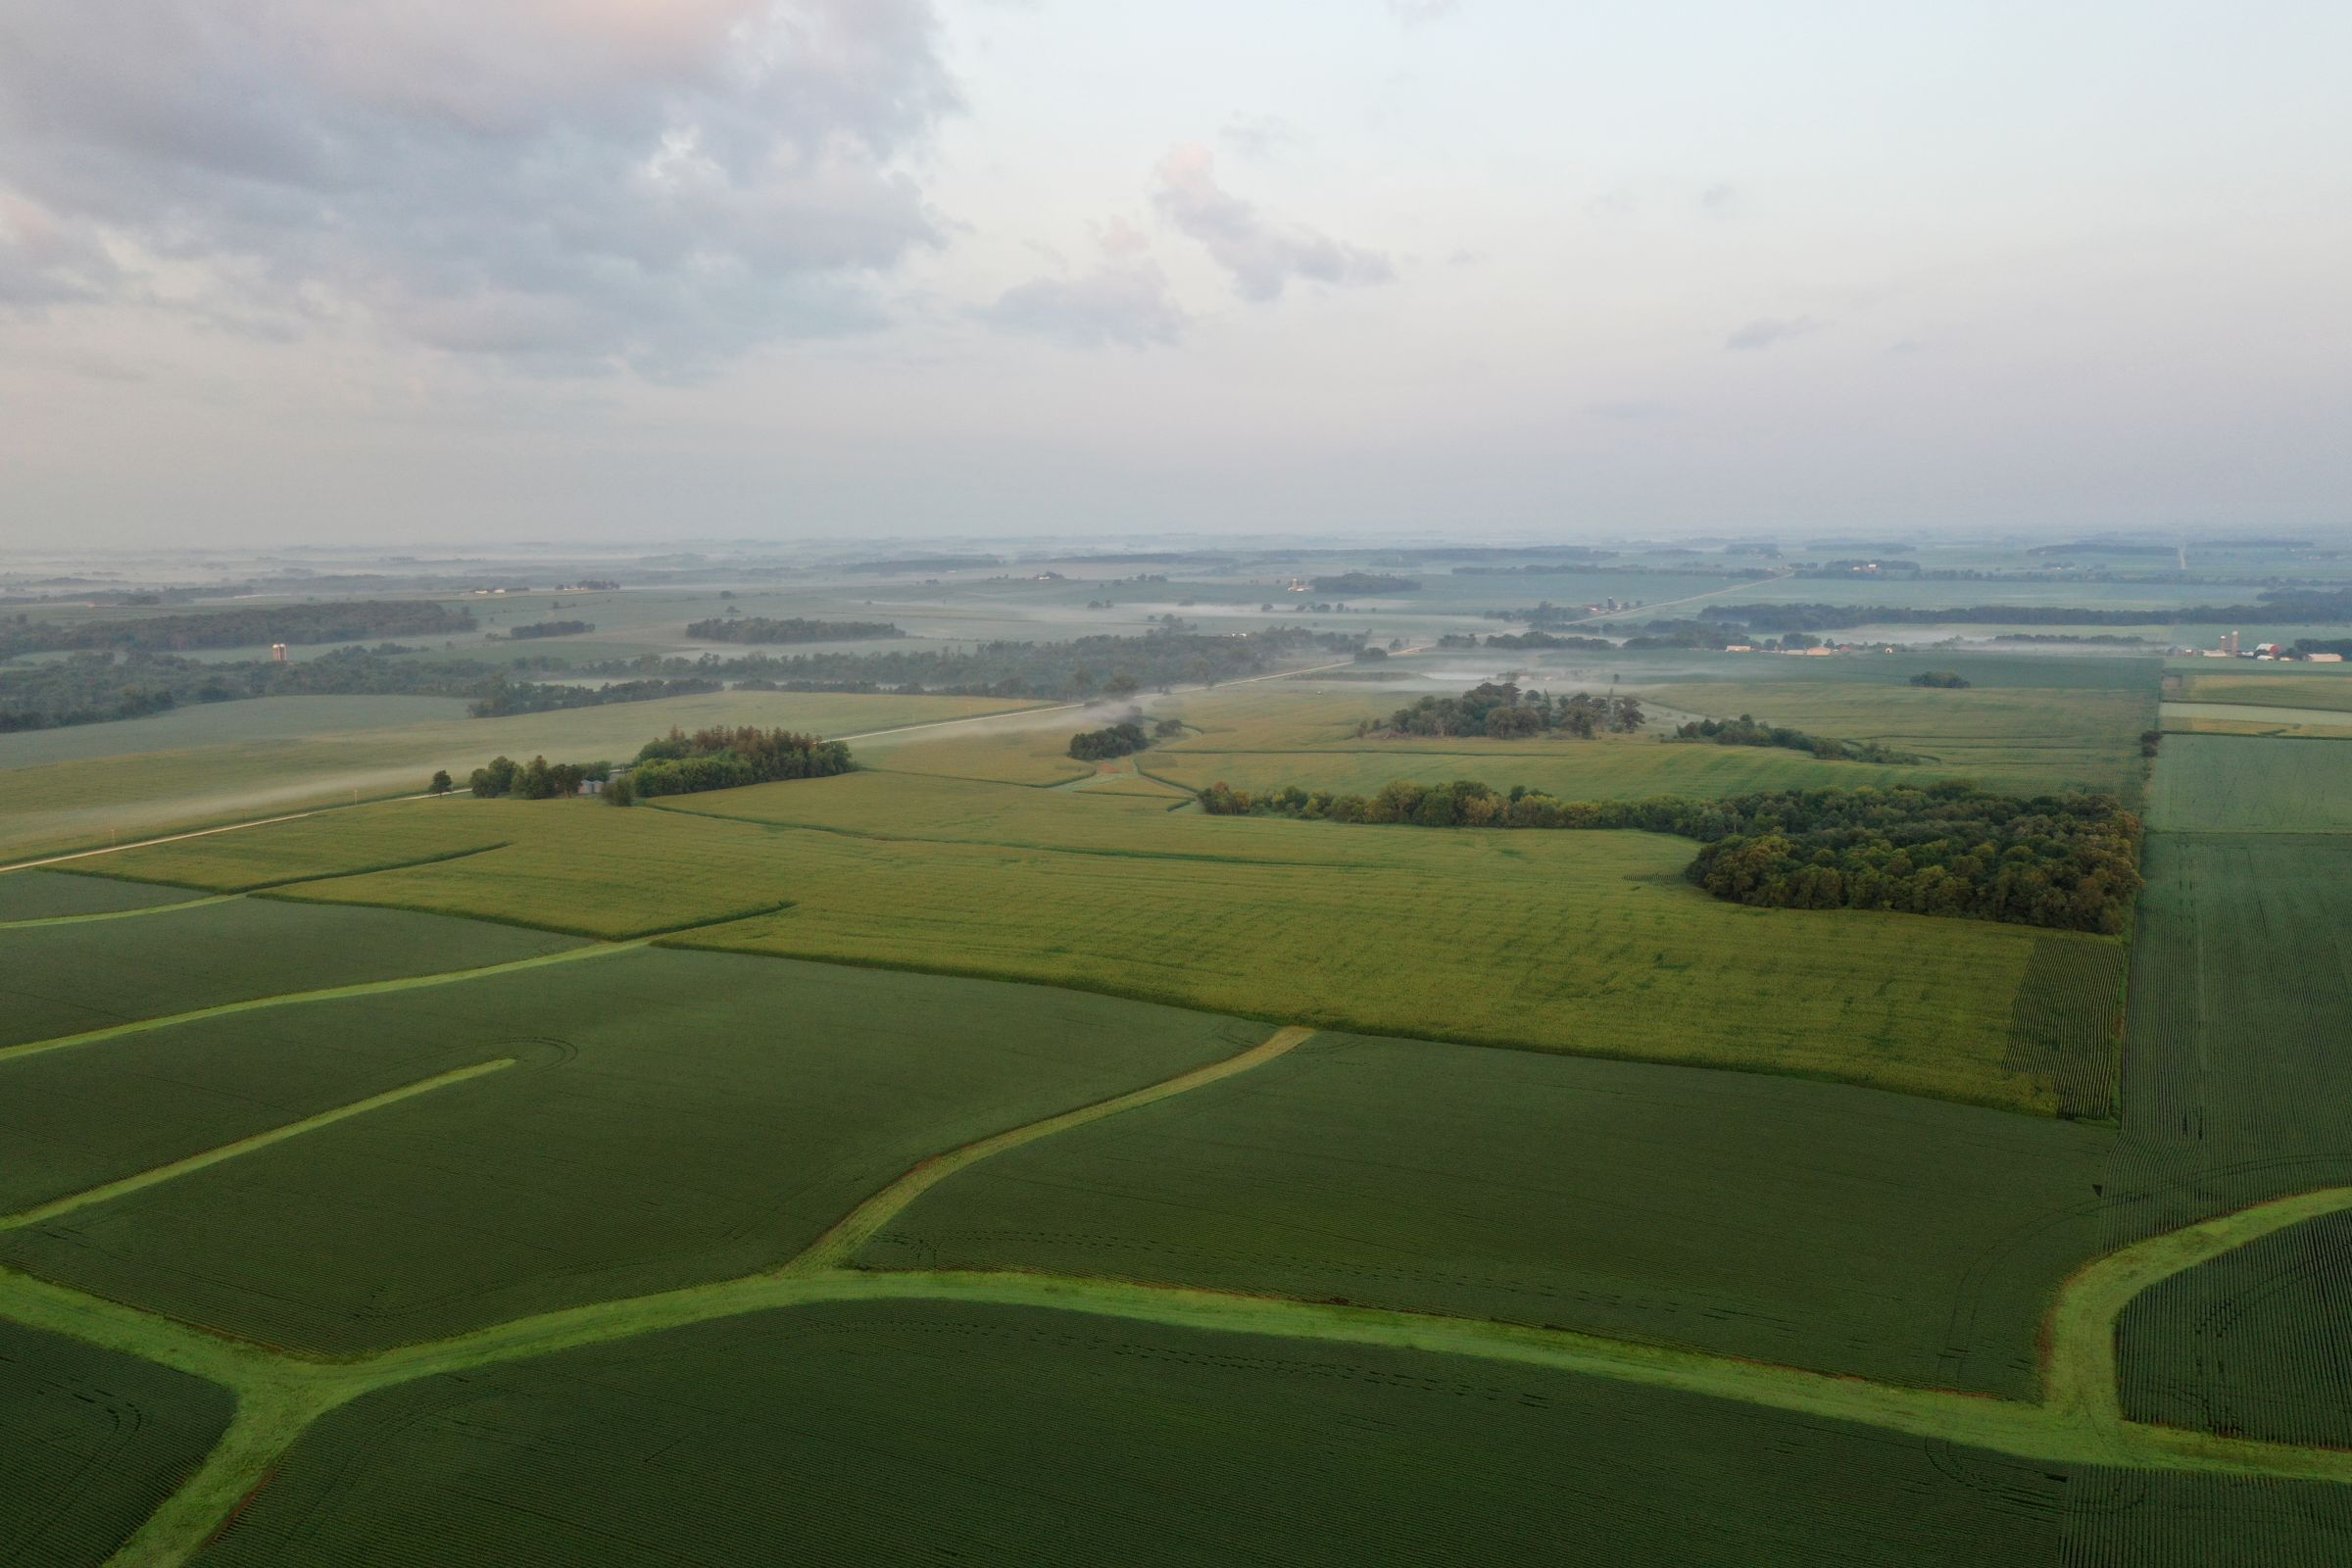 auctions-land-fayette-county-iowa-233-acres-listing-number-15645-2-2021-07-21-143931.JPG